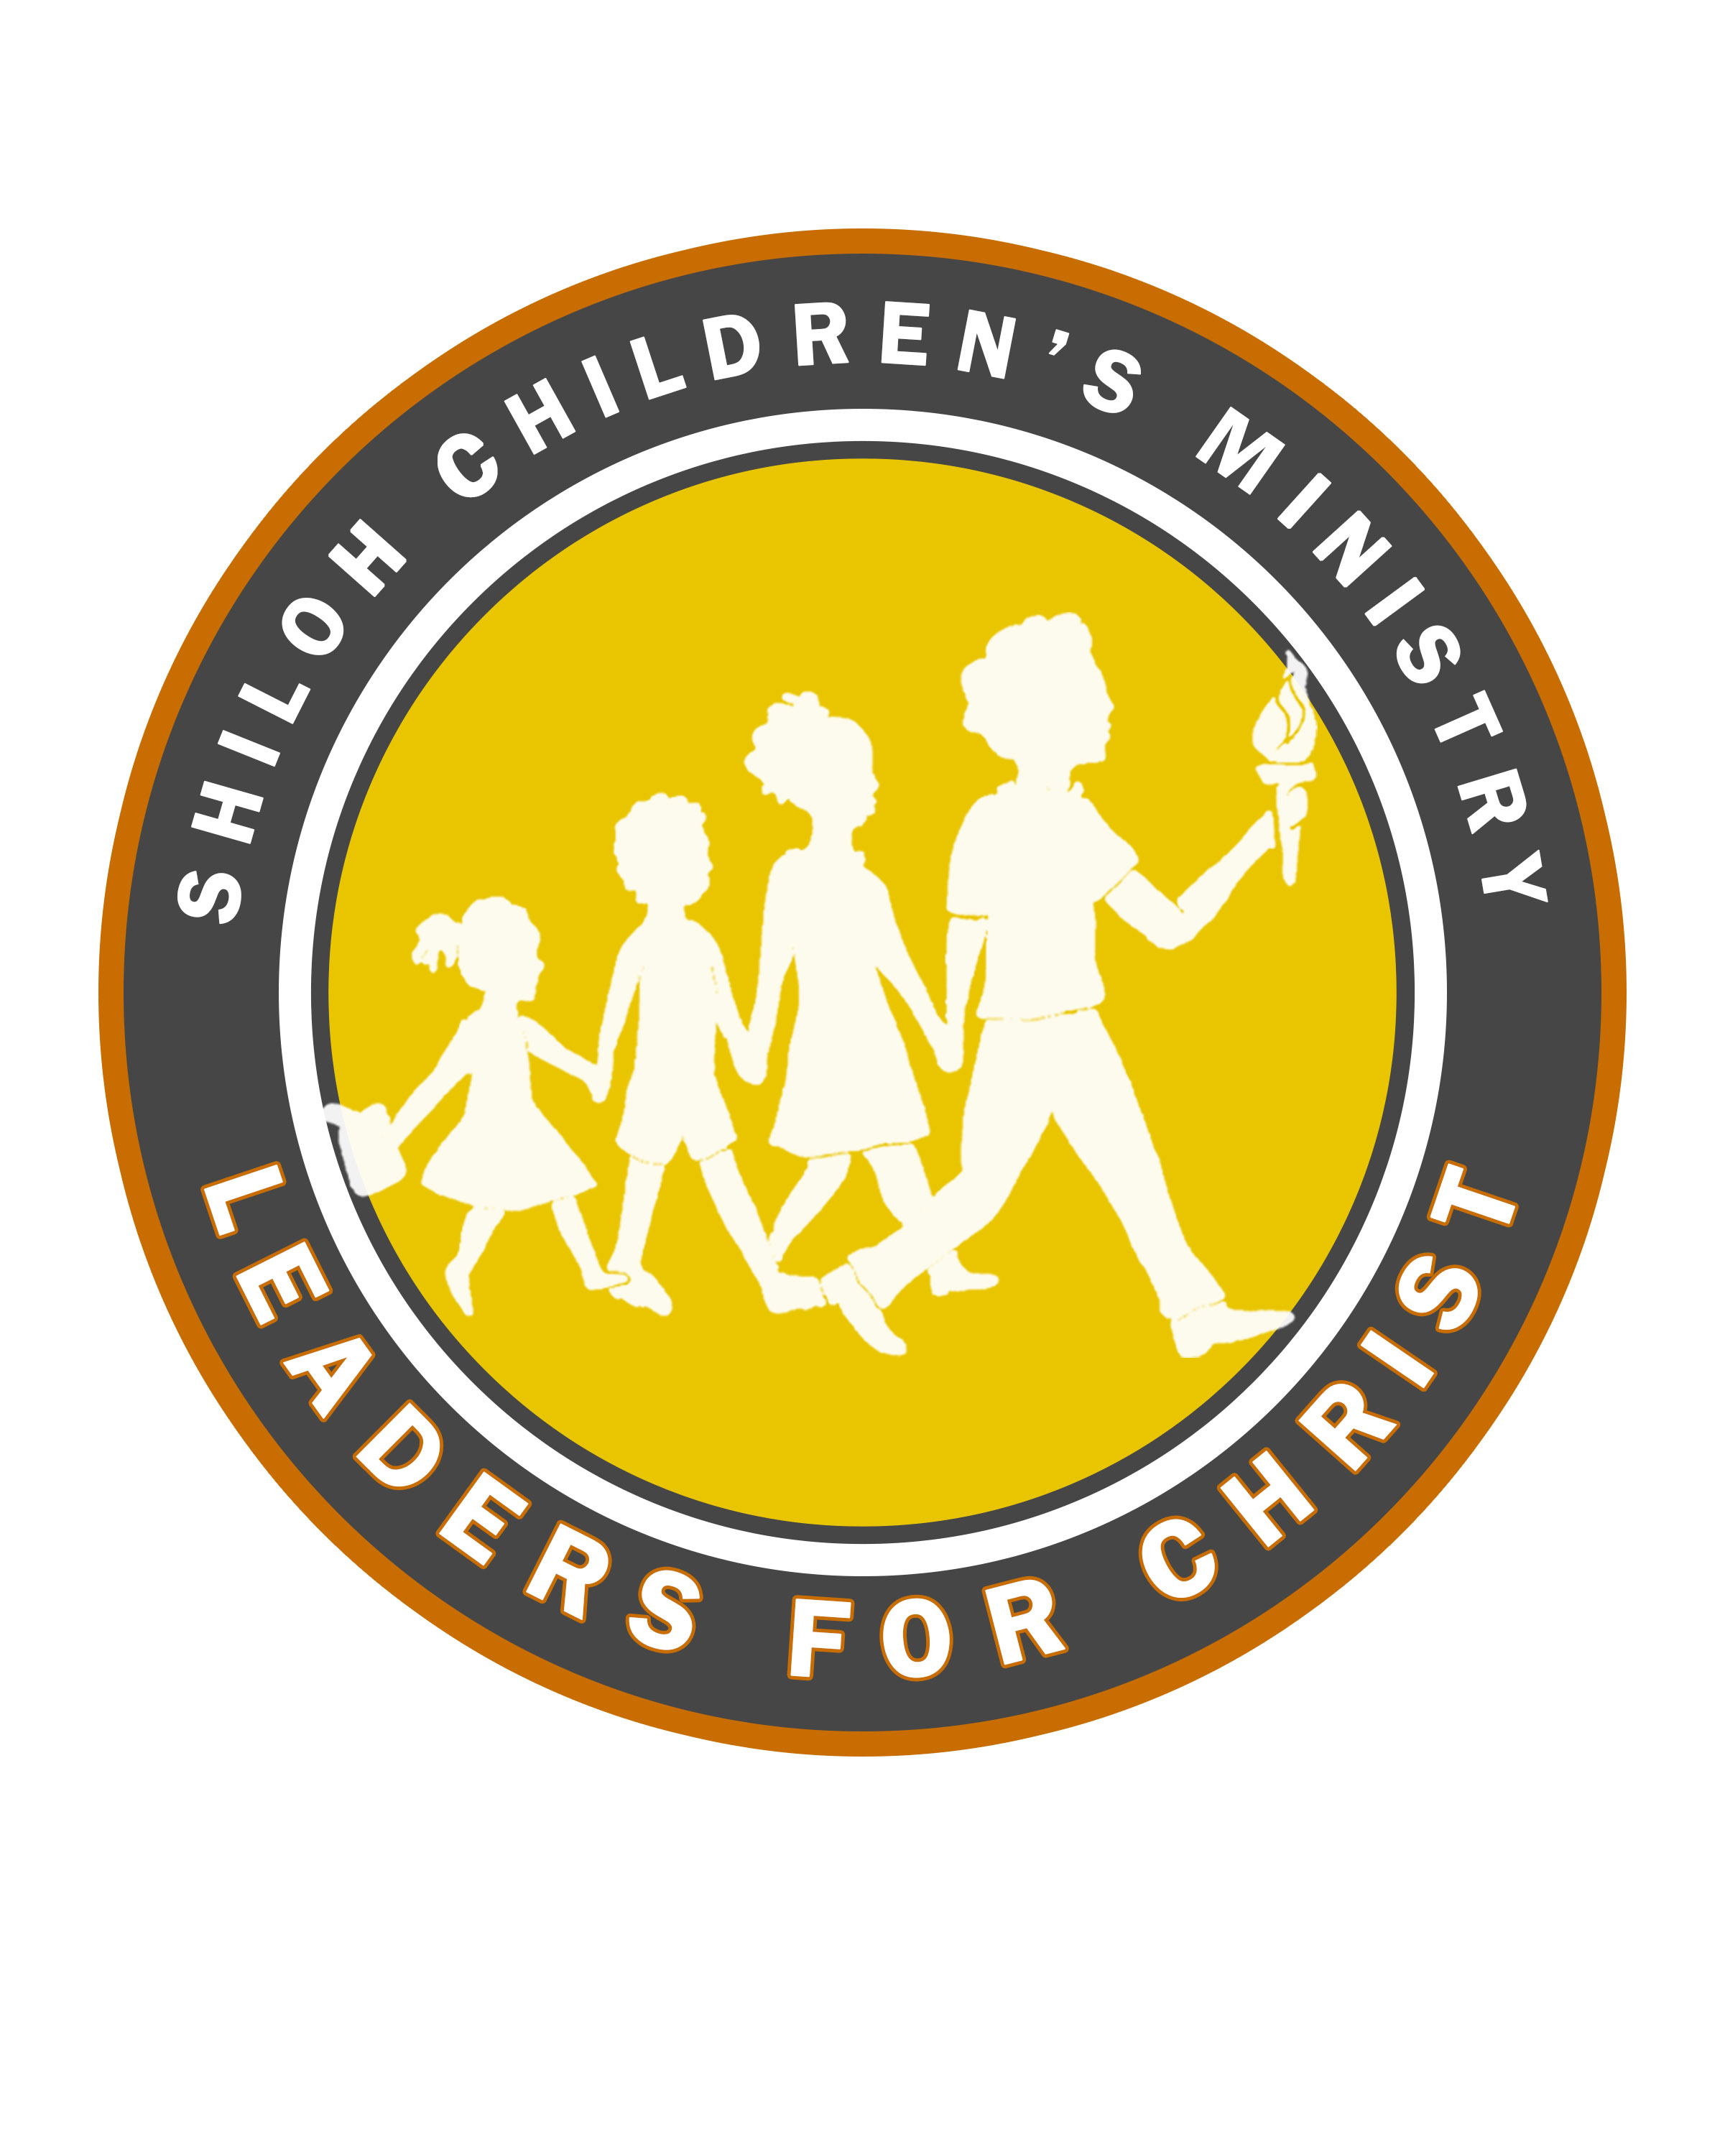 Childrens church Final logo